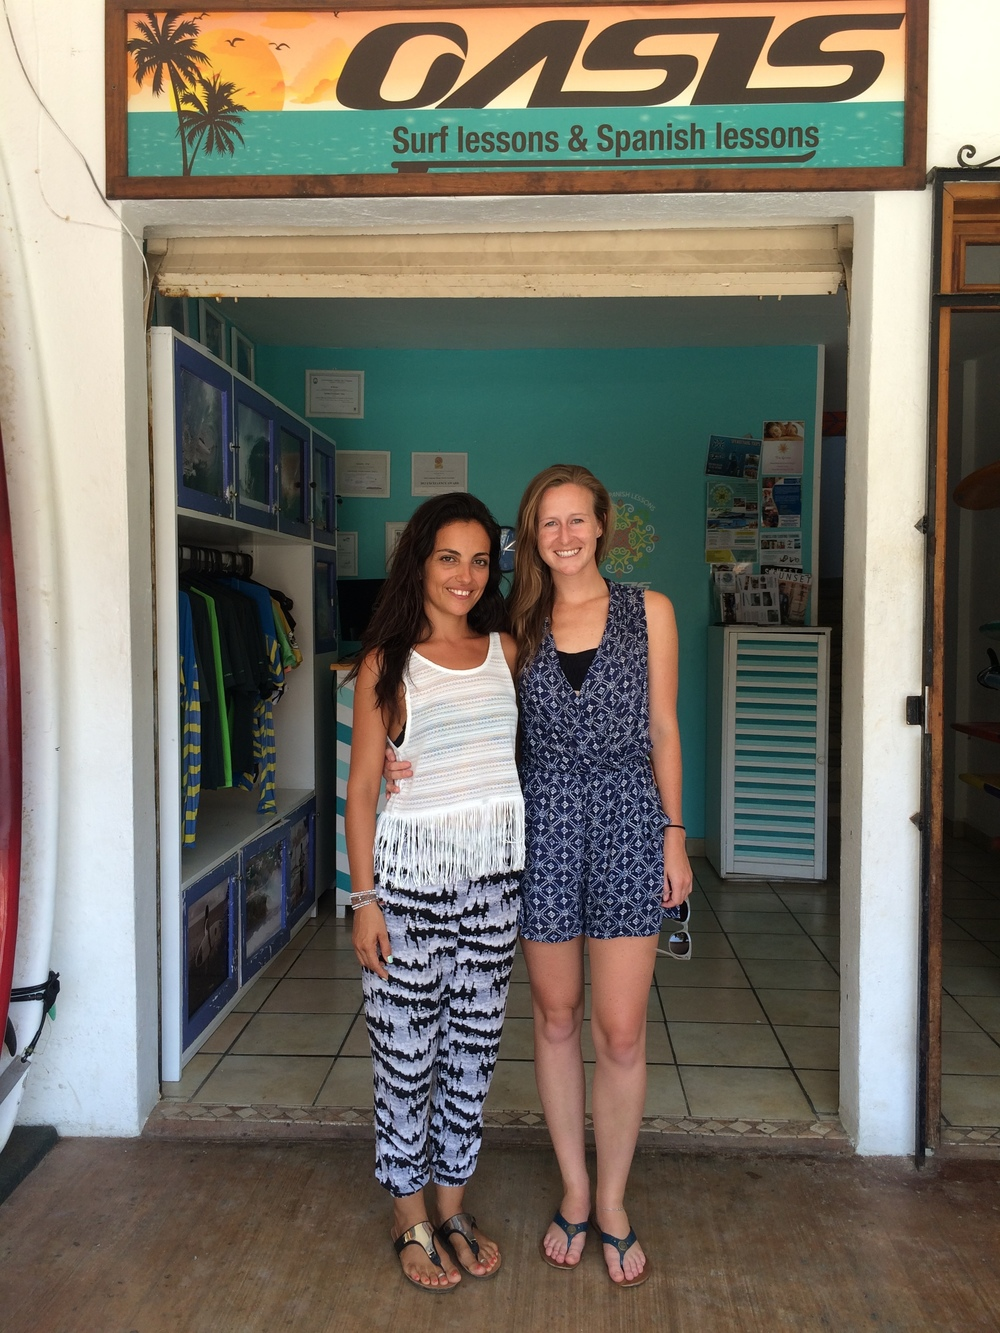 Oasis  is the organization I used to take Spanish and surf lessons. They also have homestay options and apartments. They're fantastic — check them out!